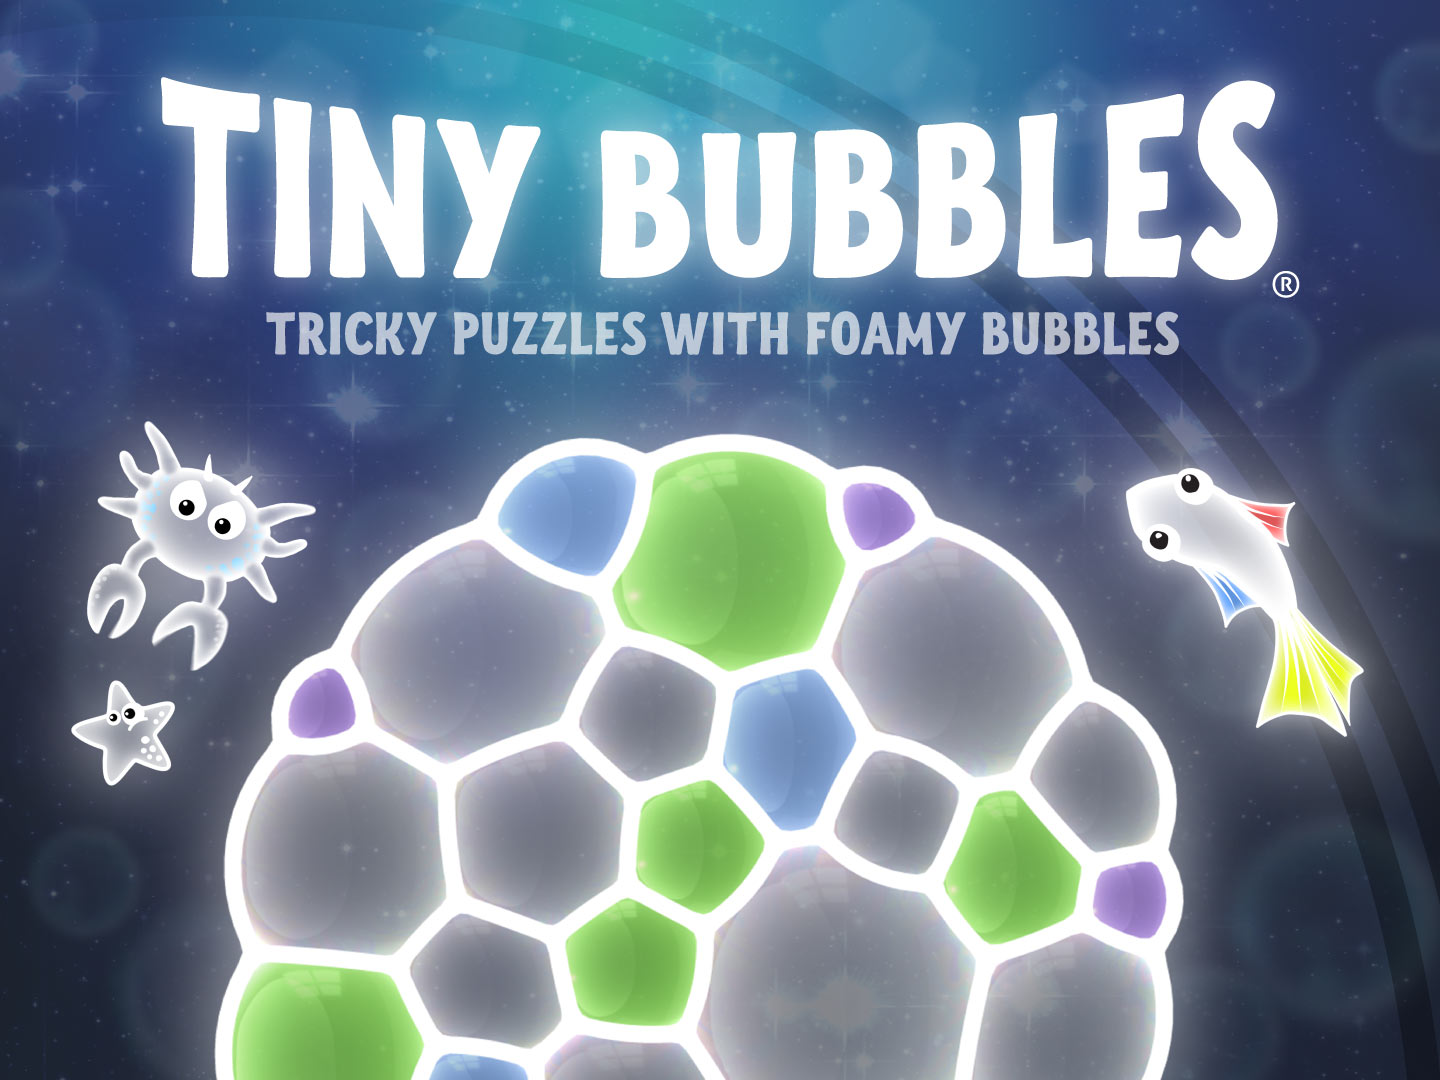 Tiny Bubbles® by Pine Street Codeworks